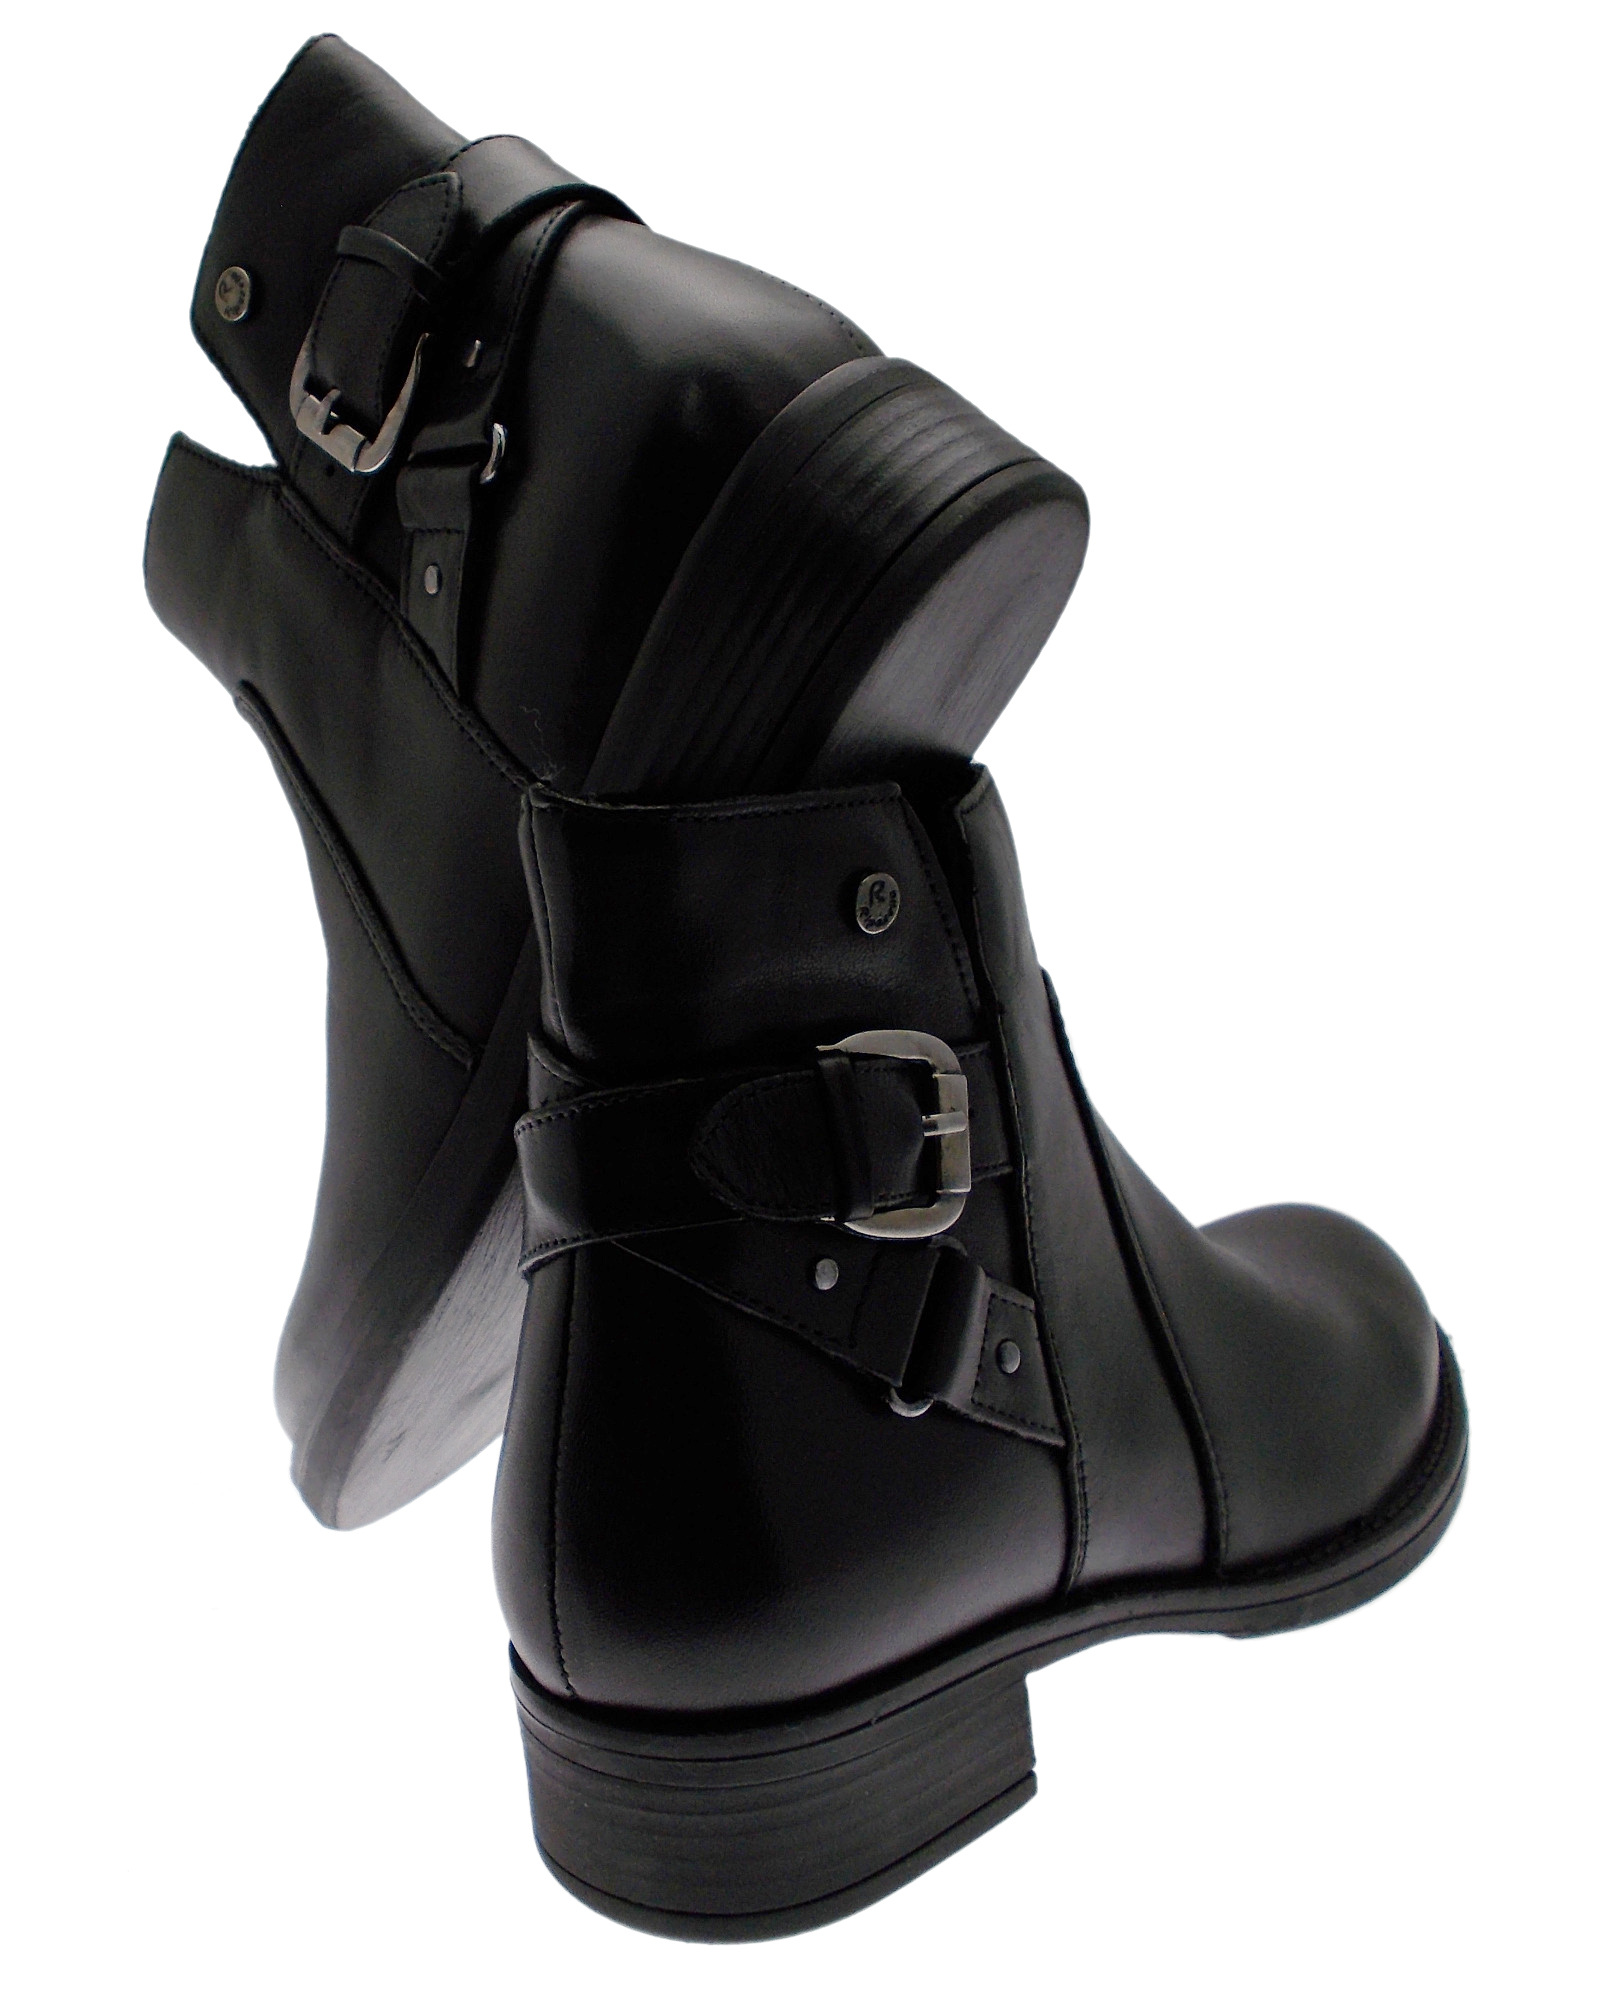 82839 ankle ankle ankle boot woman black leather Riposella 0baa2b